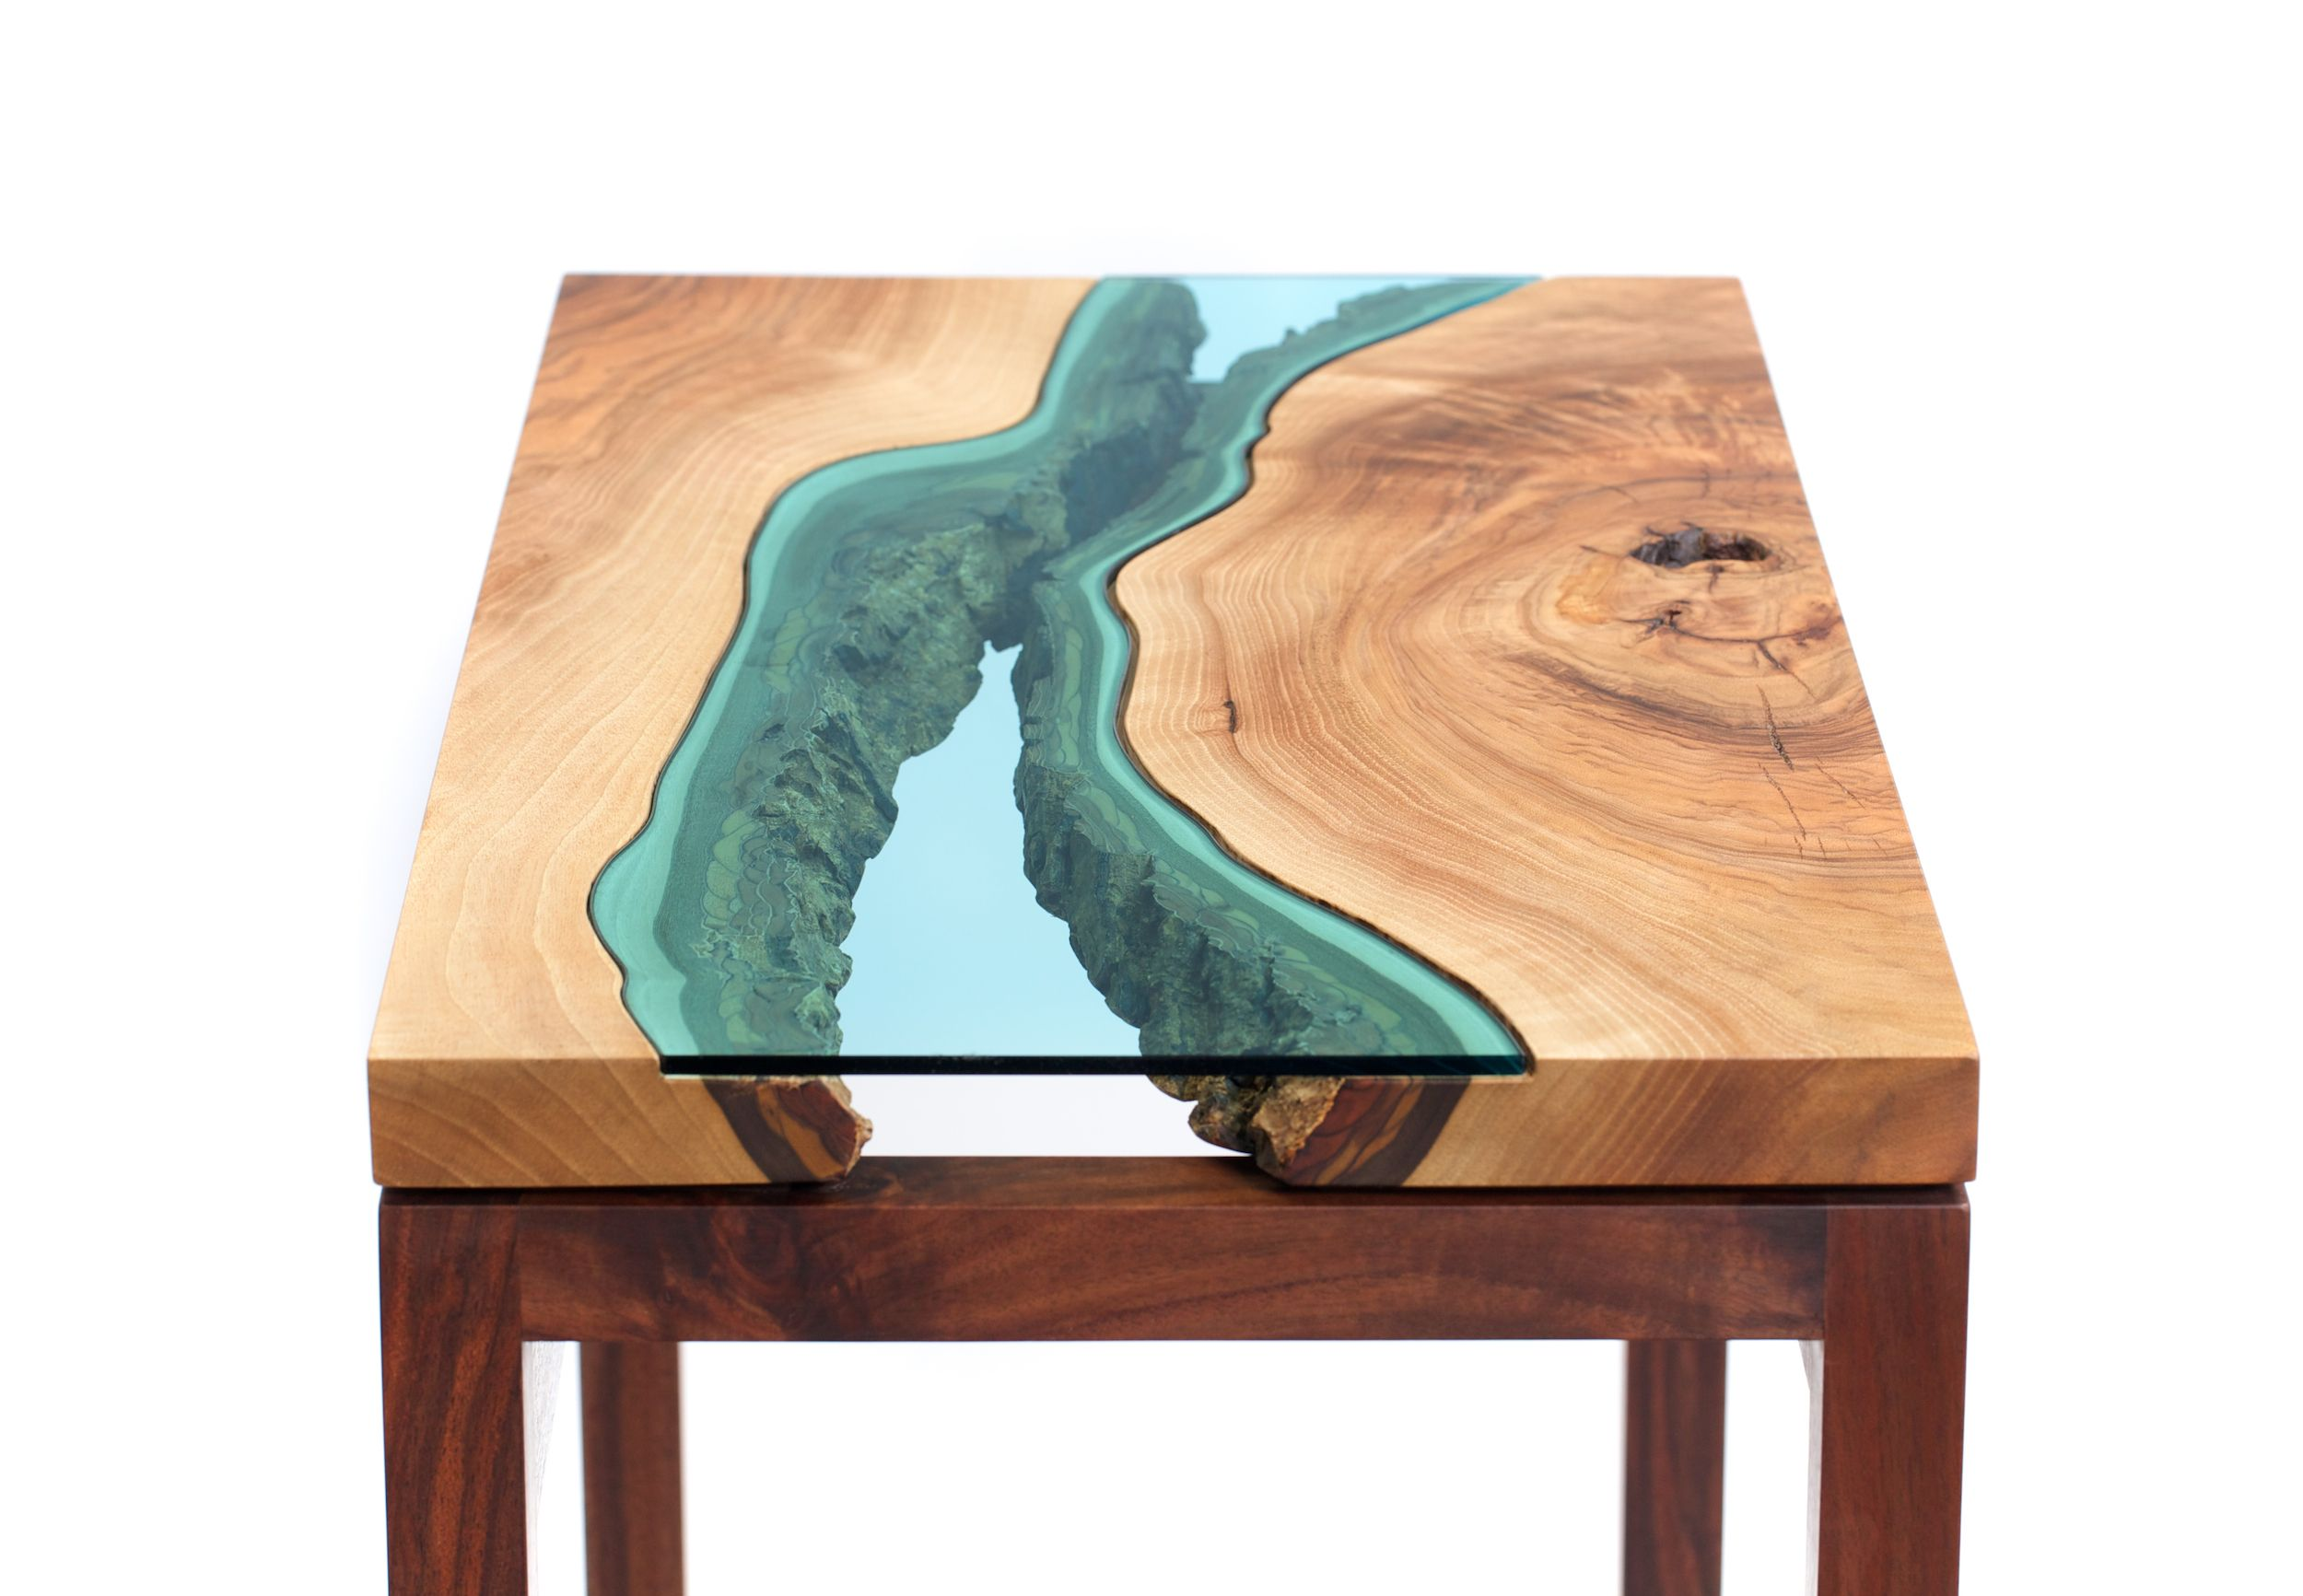 Beautiful River Inspired Wooden Tables By Greg Klassen